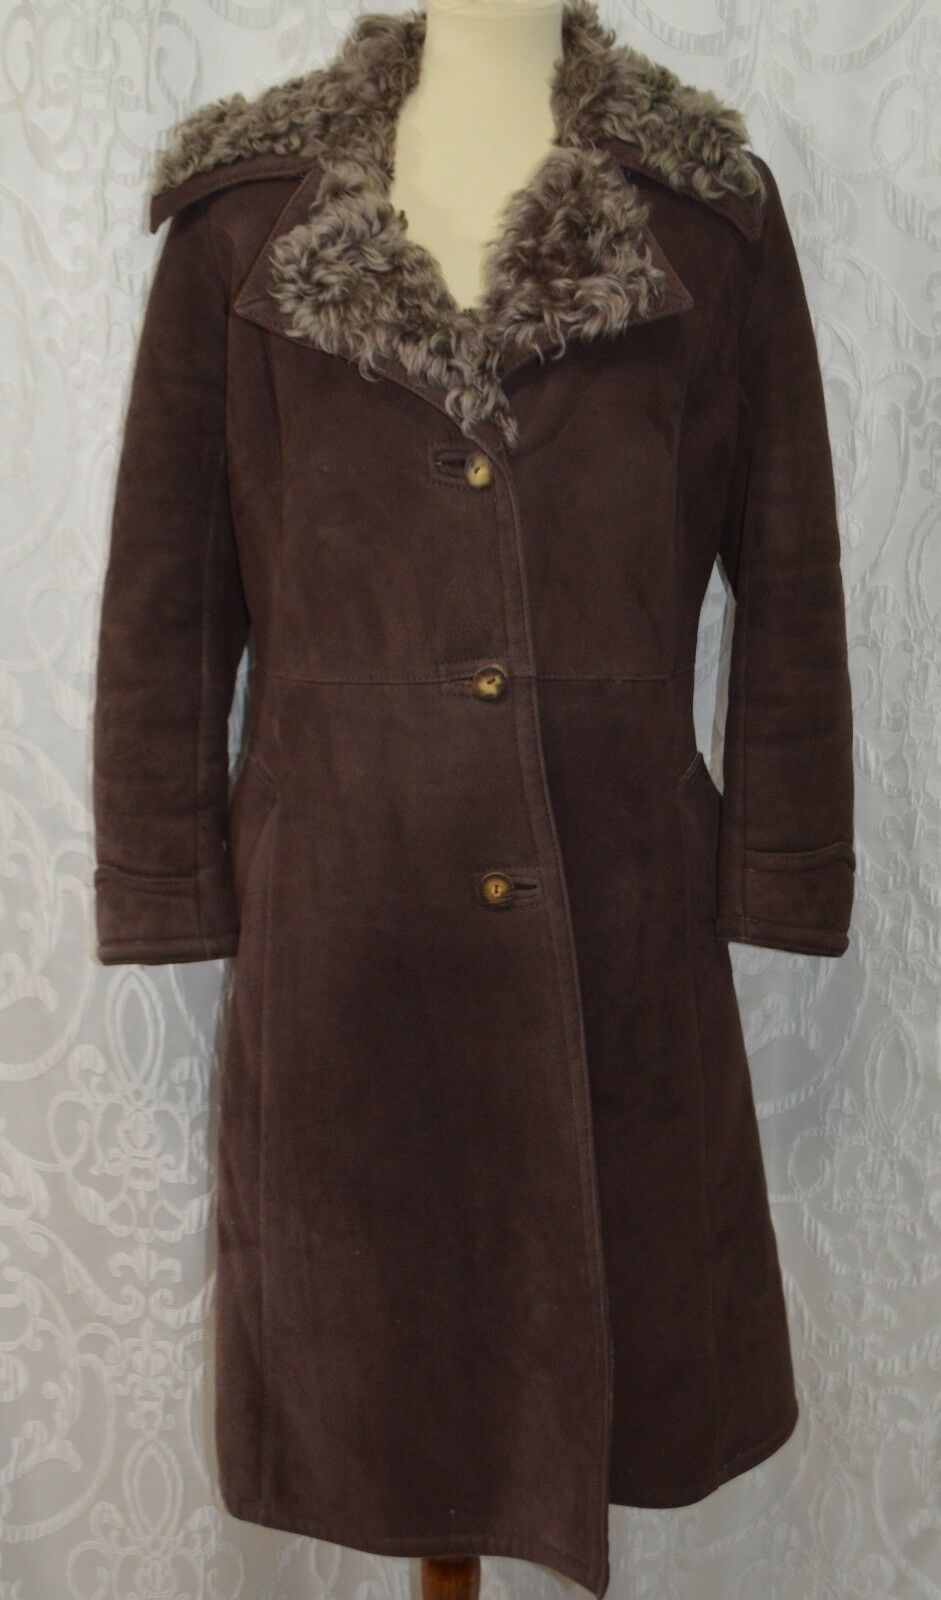 Women SAWYER OF NAPA Coat w FUR Californian Spring Lamb SUEDE ChocoBrown Size 12